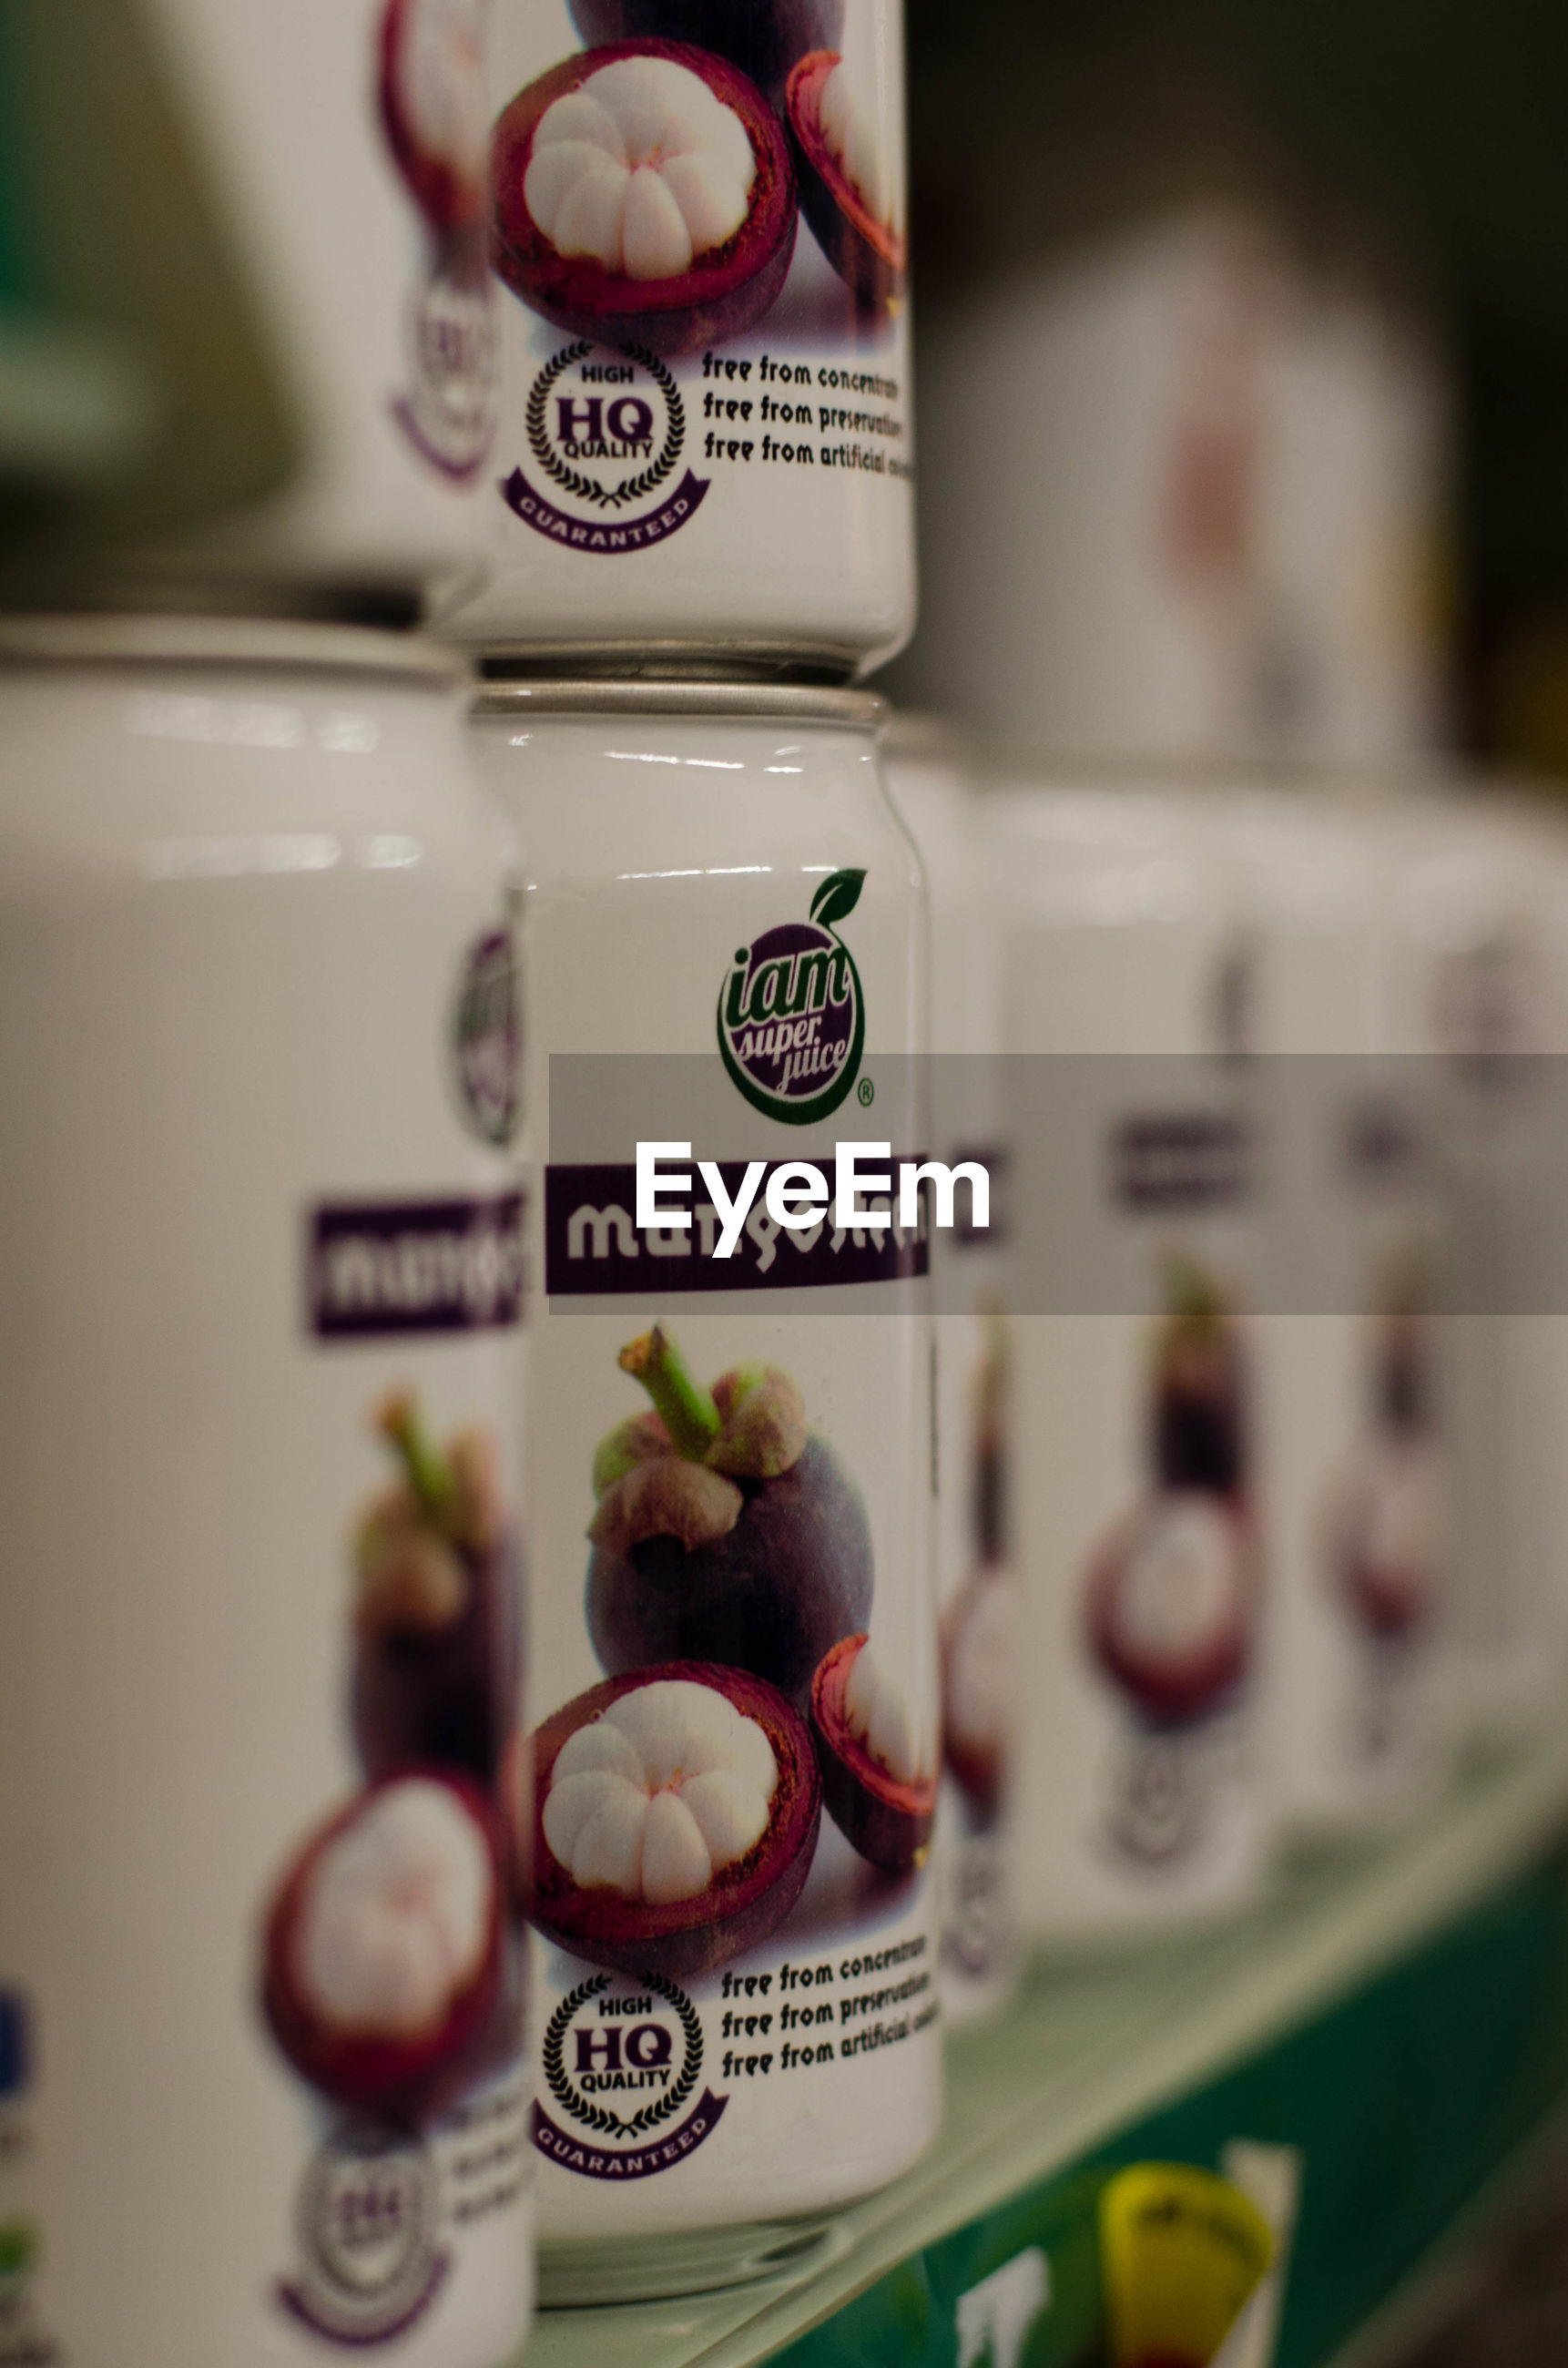 indoors, close-up, text, for sale, no people, retail, communication, food and drink, jar, food, price tag, day, freshness